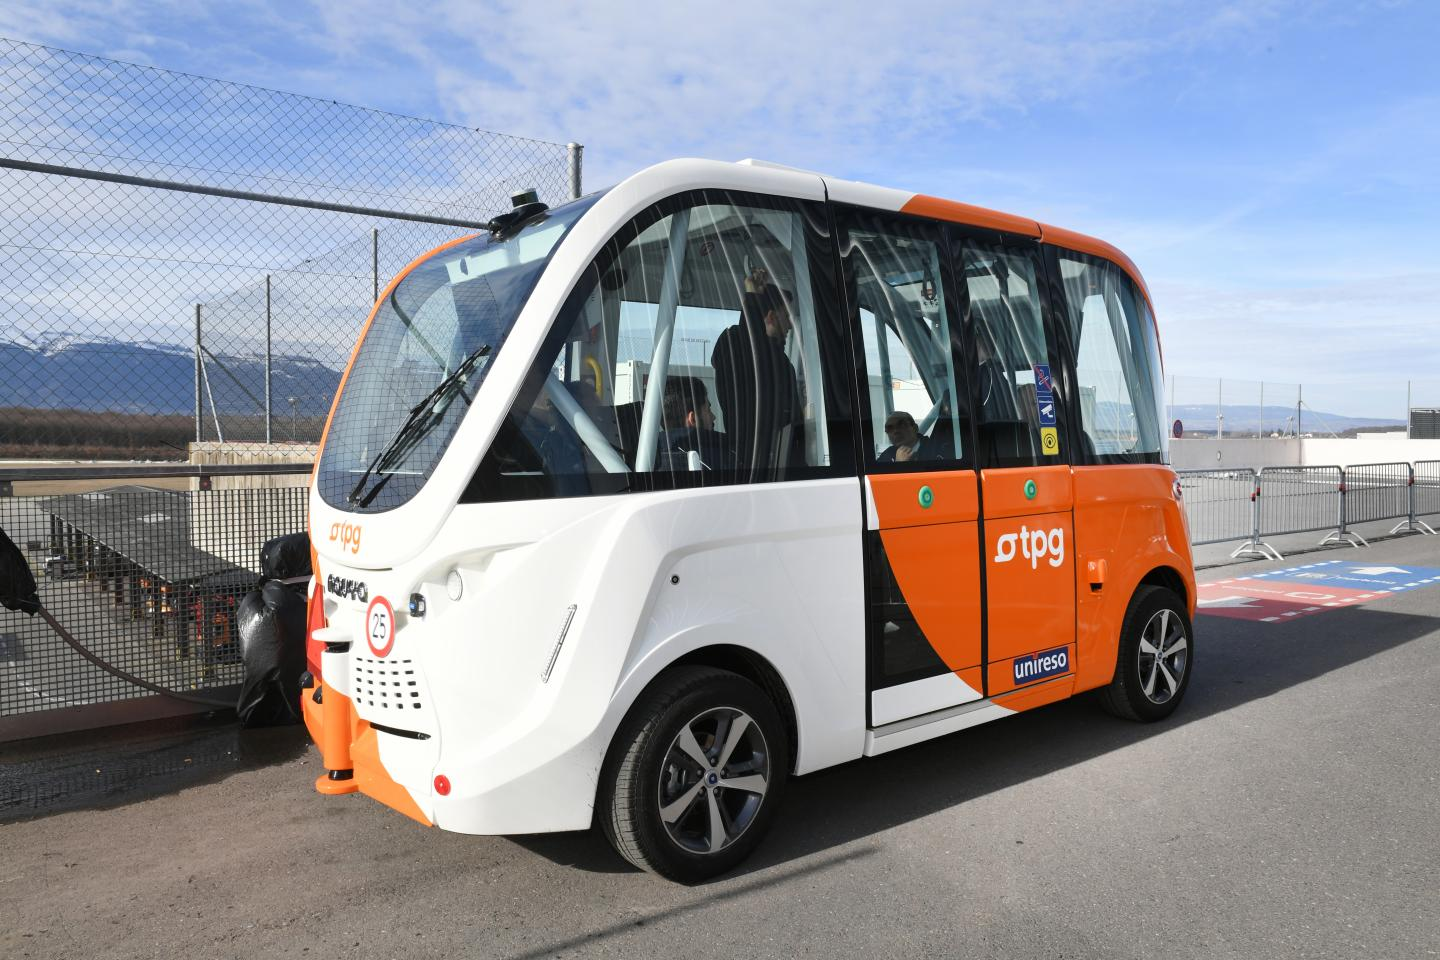 This is the autonomous vehicle Navya Arma (model DL4) acquired by the Transports publics genevois (tpg) in August 2017. Source: © TPG